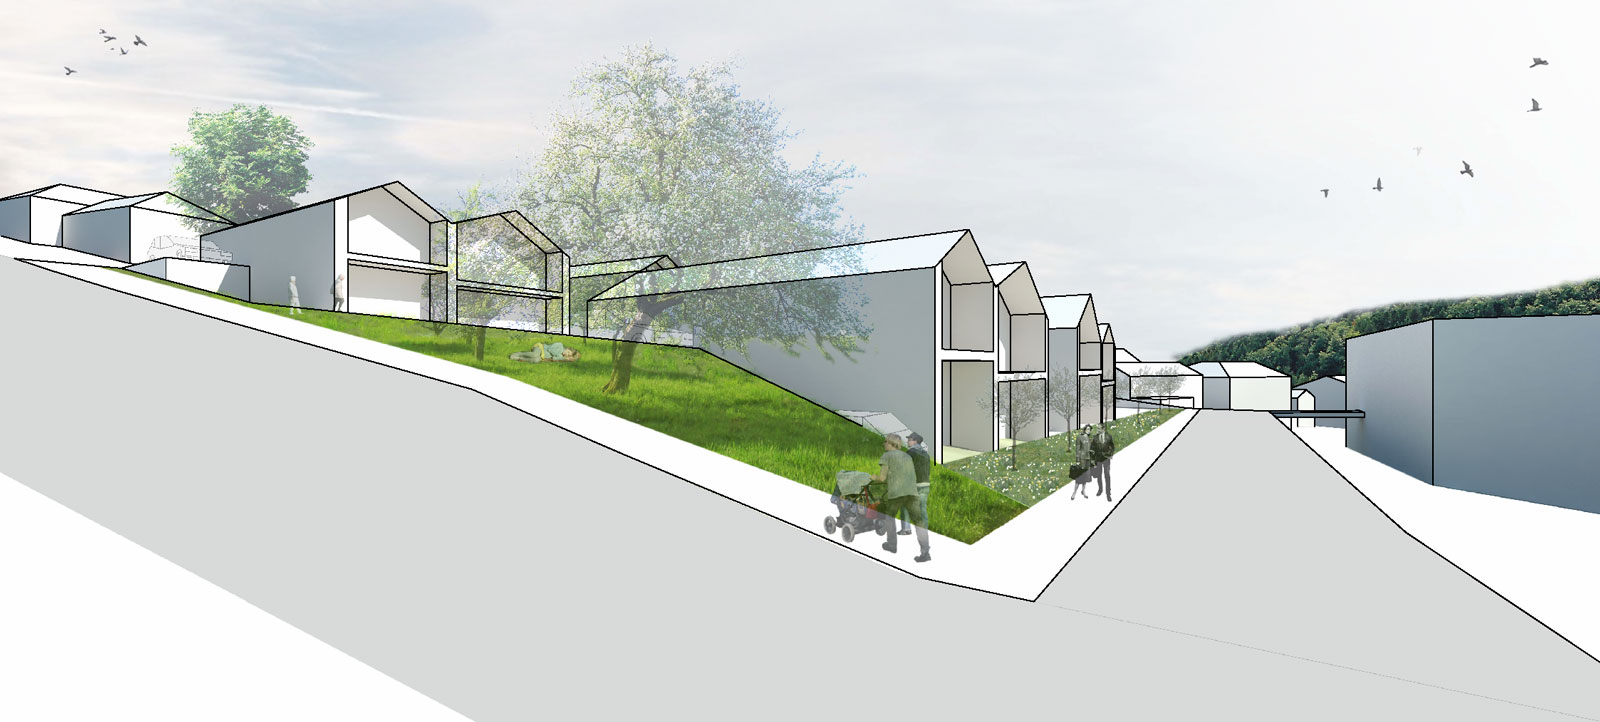 simulation of the disabled housing development